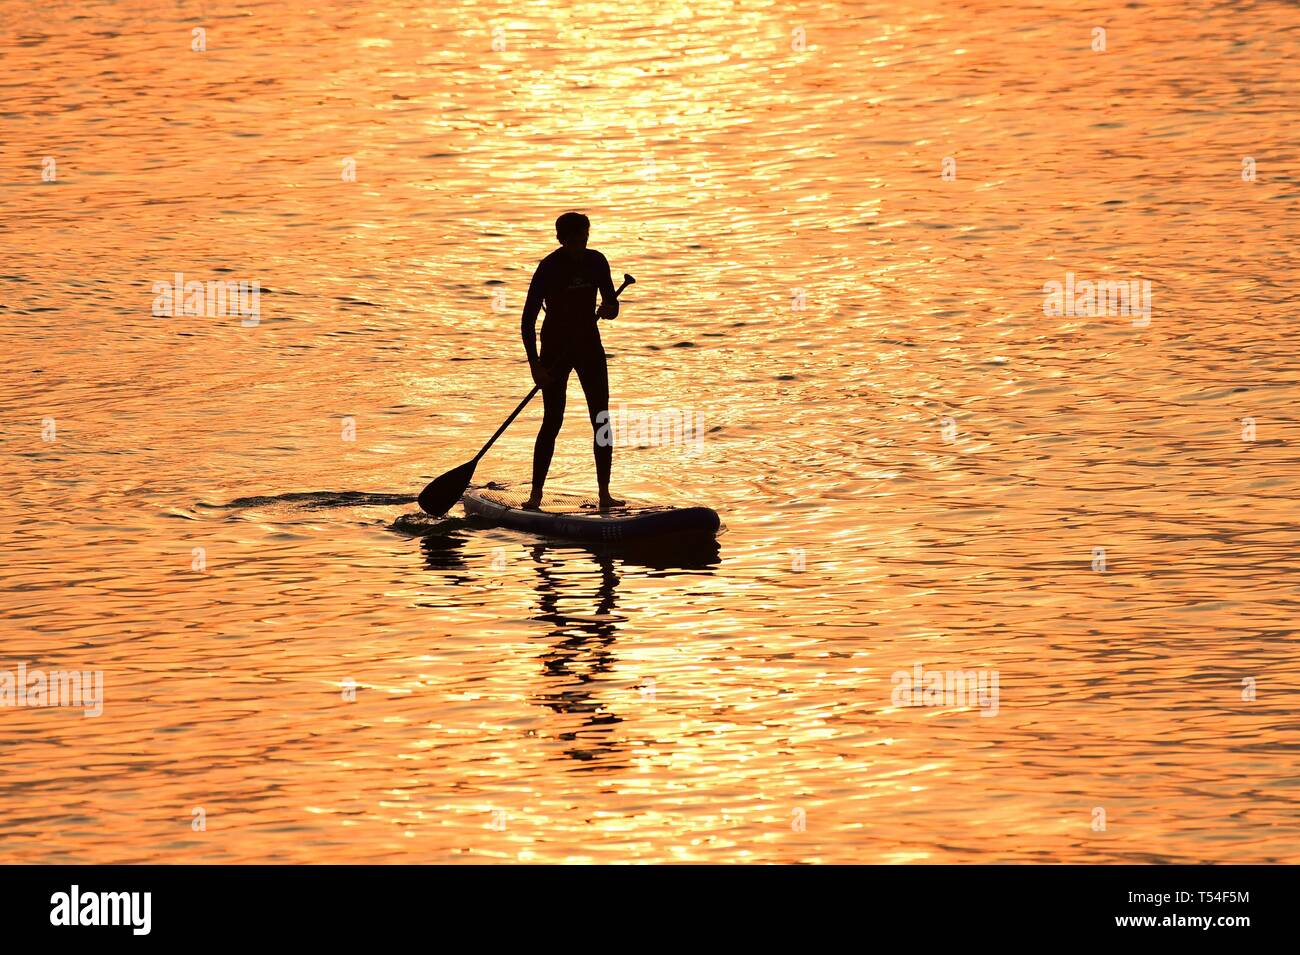 Aberystwyth Ceredigion Wales UK, Easter Saturday 20th April 20th 19. Paddle boarding at sunset in Aberystwyth Wales at the end of a day of soaring temperatures, as the country enjoys the gloriously hot the Easter Bank Holiday weather. Temperature are forecast to hit 26 Celsius and places this weekend. photo Credit: Keith Morris/Alamy Live News - Stock Image